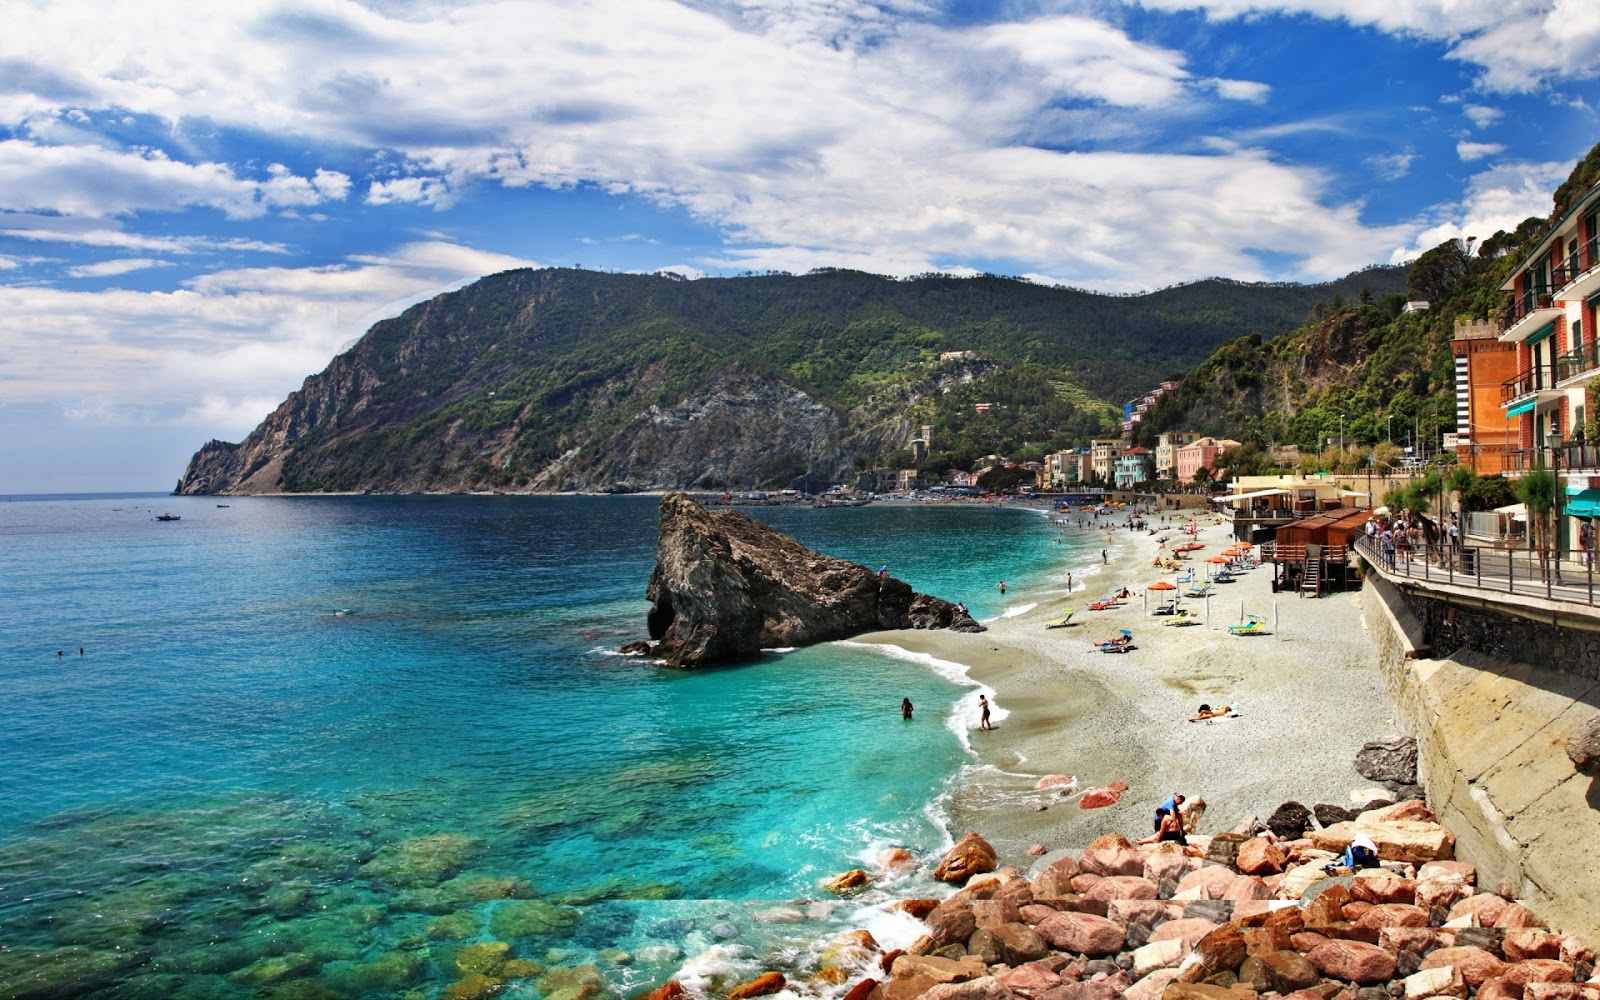 http://3.bp.blogspot.com/-oYHd0e55CNs/Ua_Dr0Y3PUI/AAAAAAABzp0/lfXF3gny_ss/s1600/monterosso-al-mare-cinque-terre-1920x1200-wallpaper-.jpg